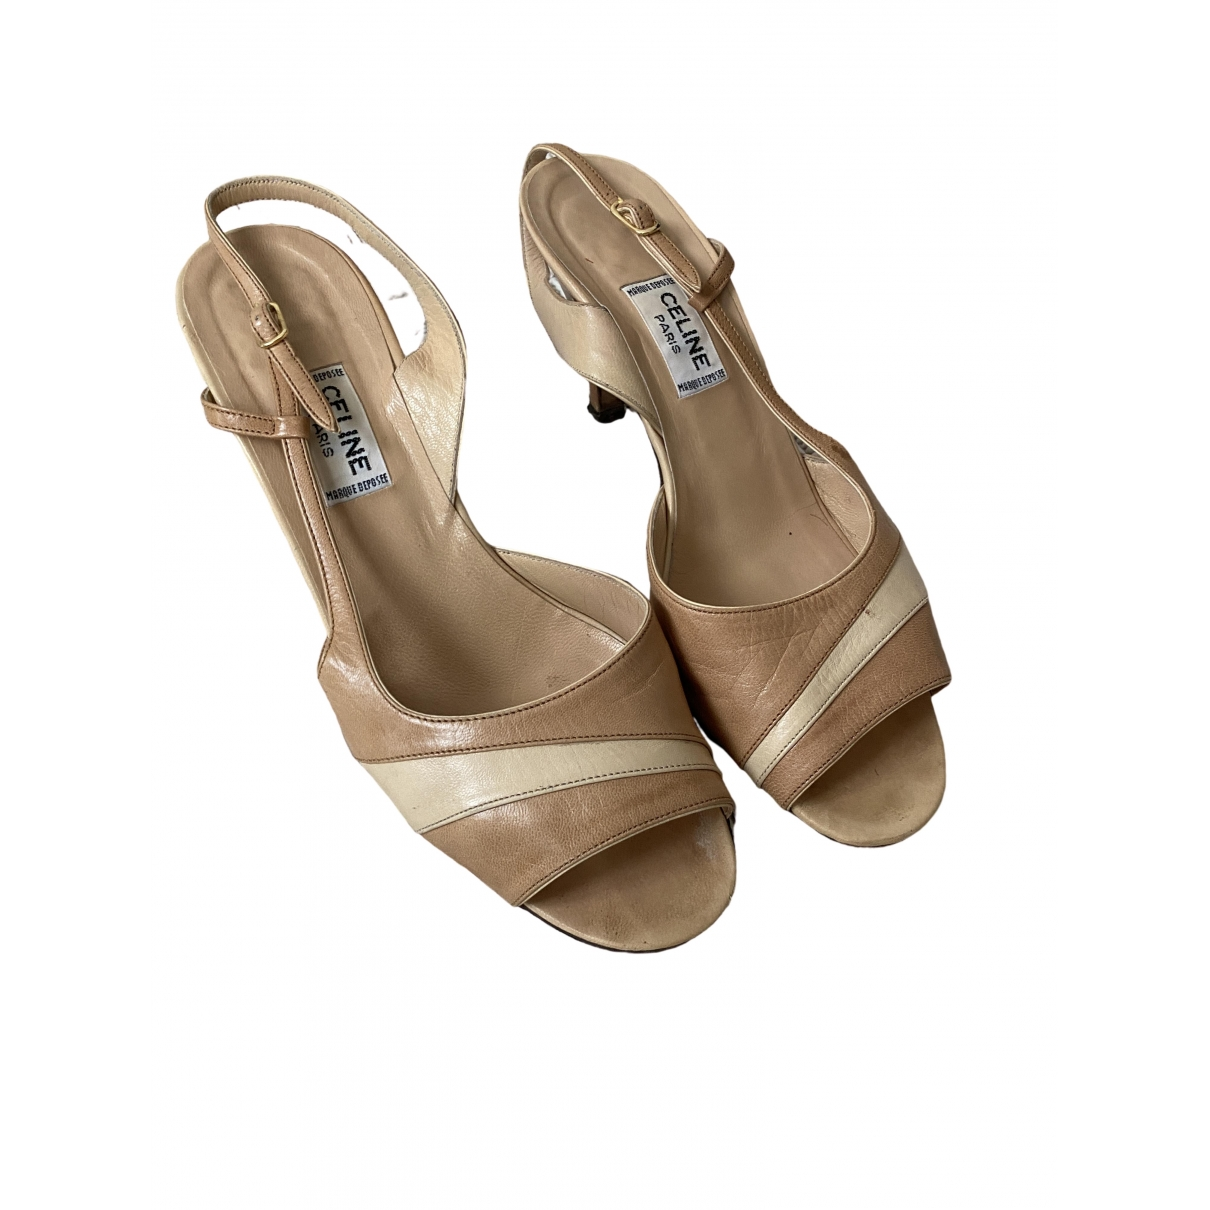 Celine \N Beige Leather Heels for Women 5 UK